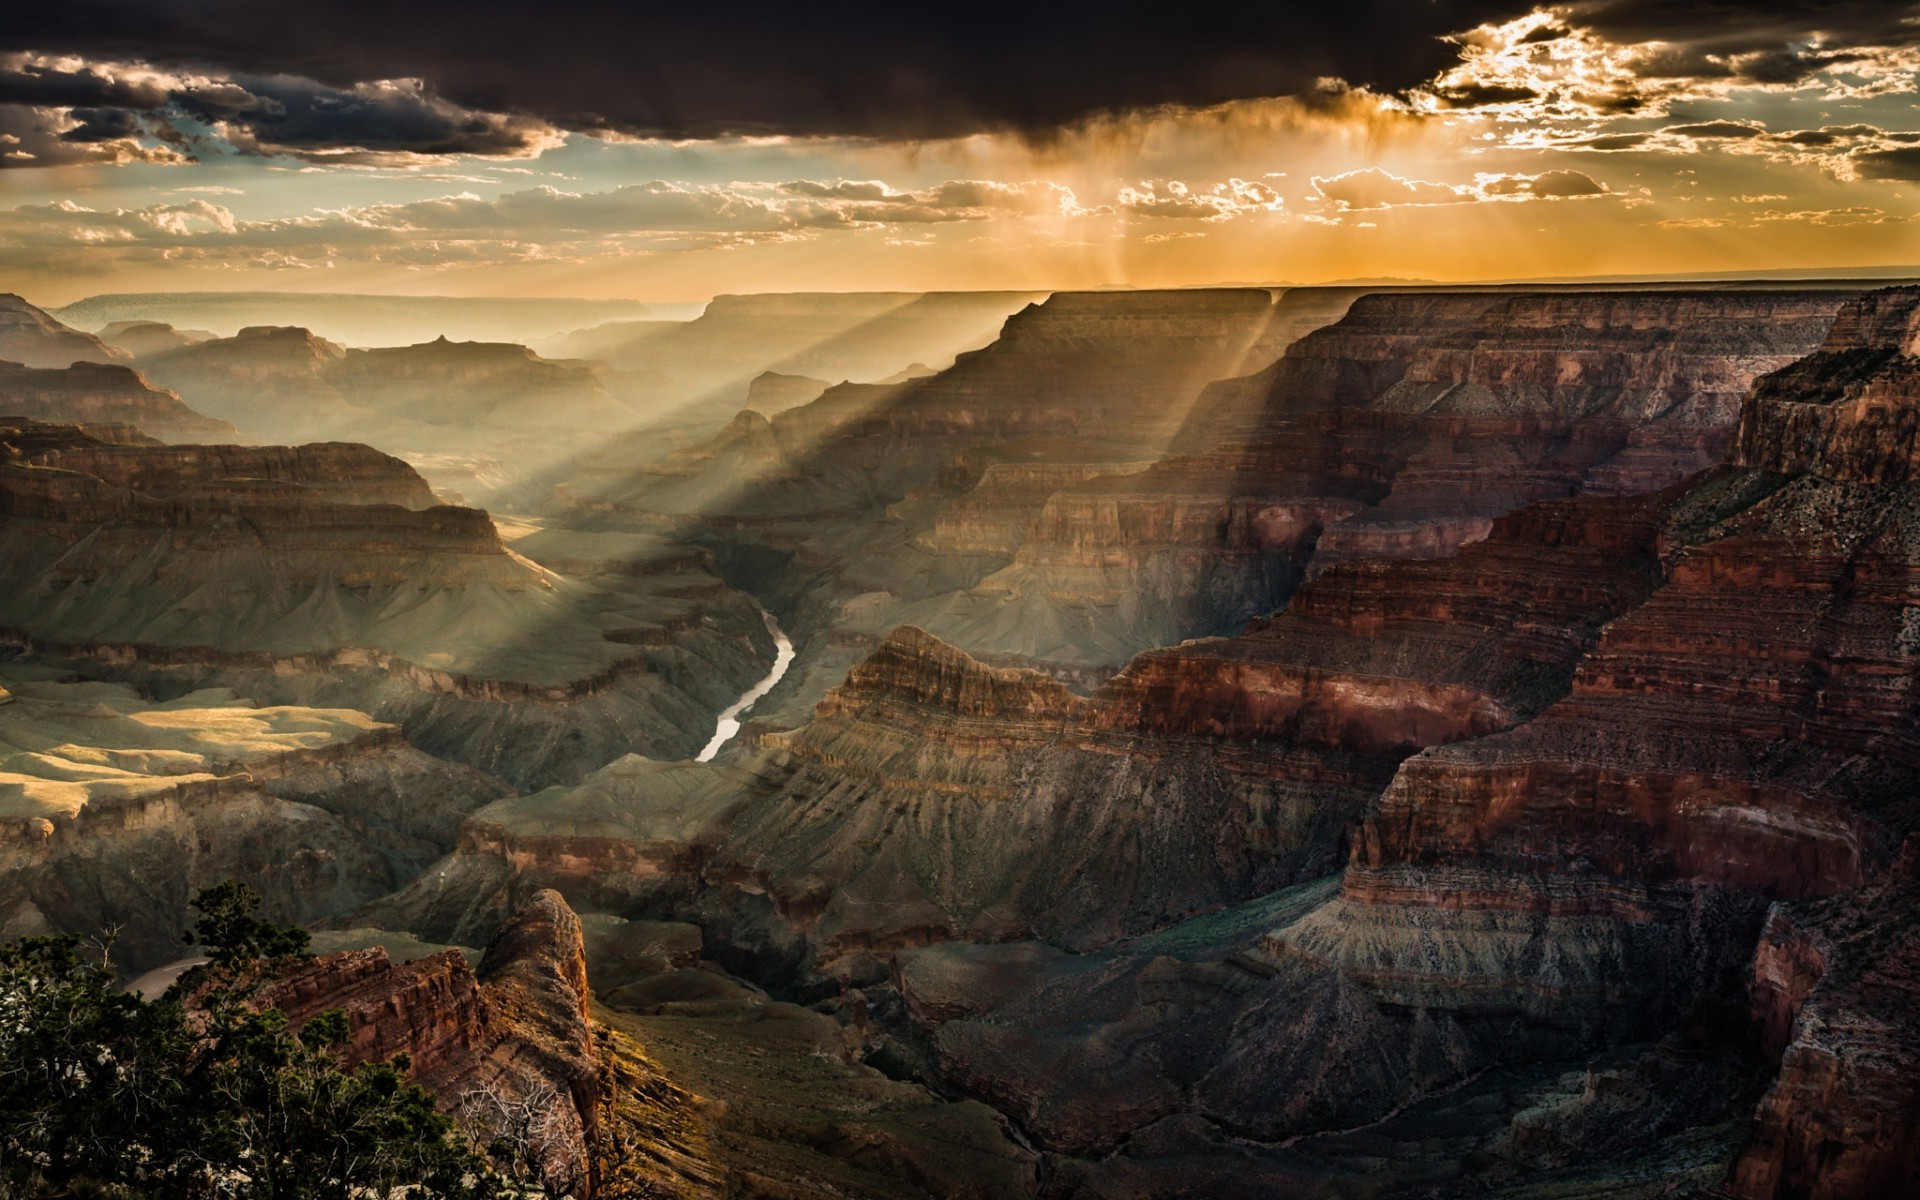 Grand Canyon Wallpaper Hd Nature Landscape Clouds Trees Canyon Grand Canyon